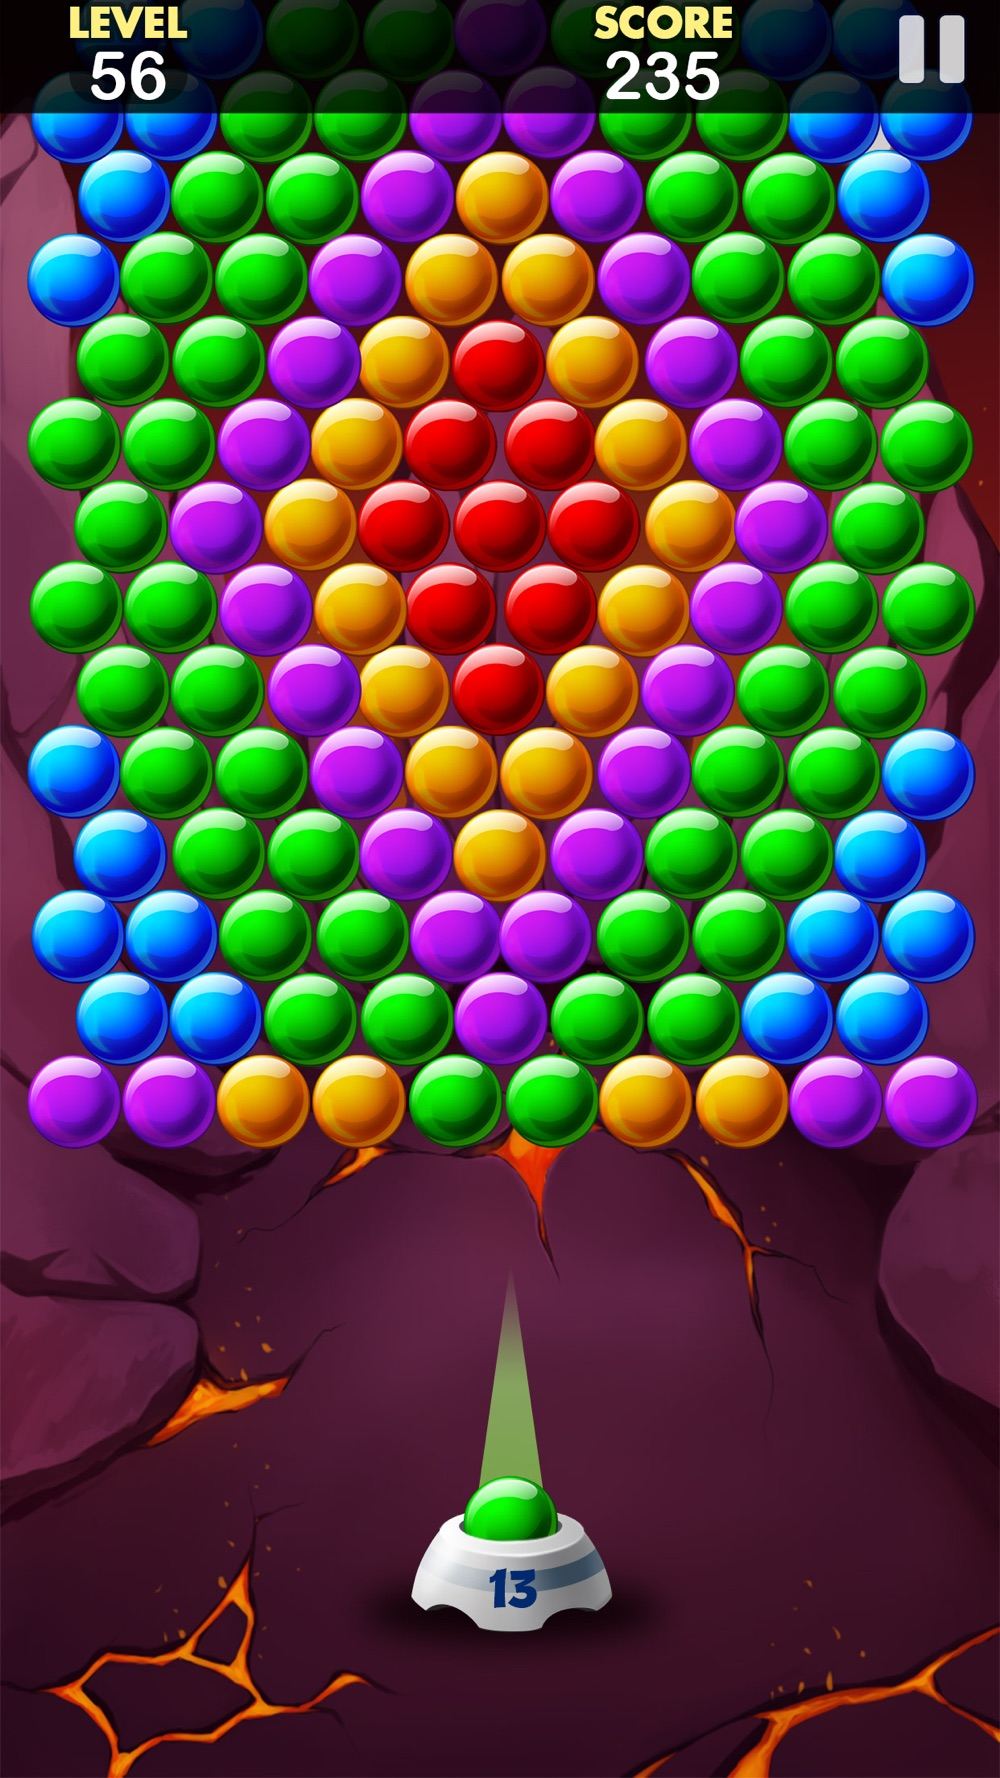 Hack tool for Bubble Shooter - Bubble Pop